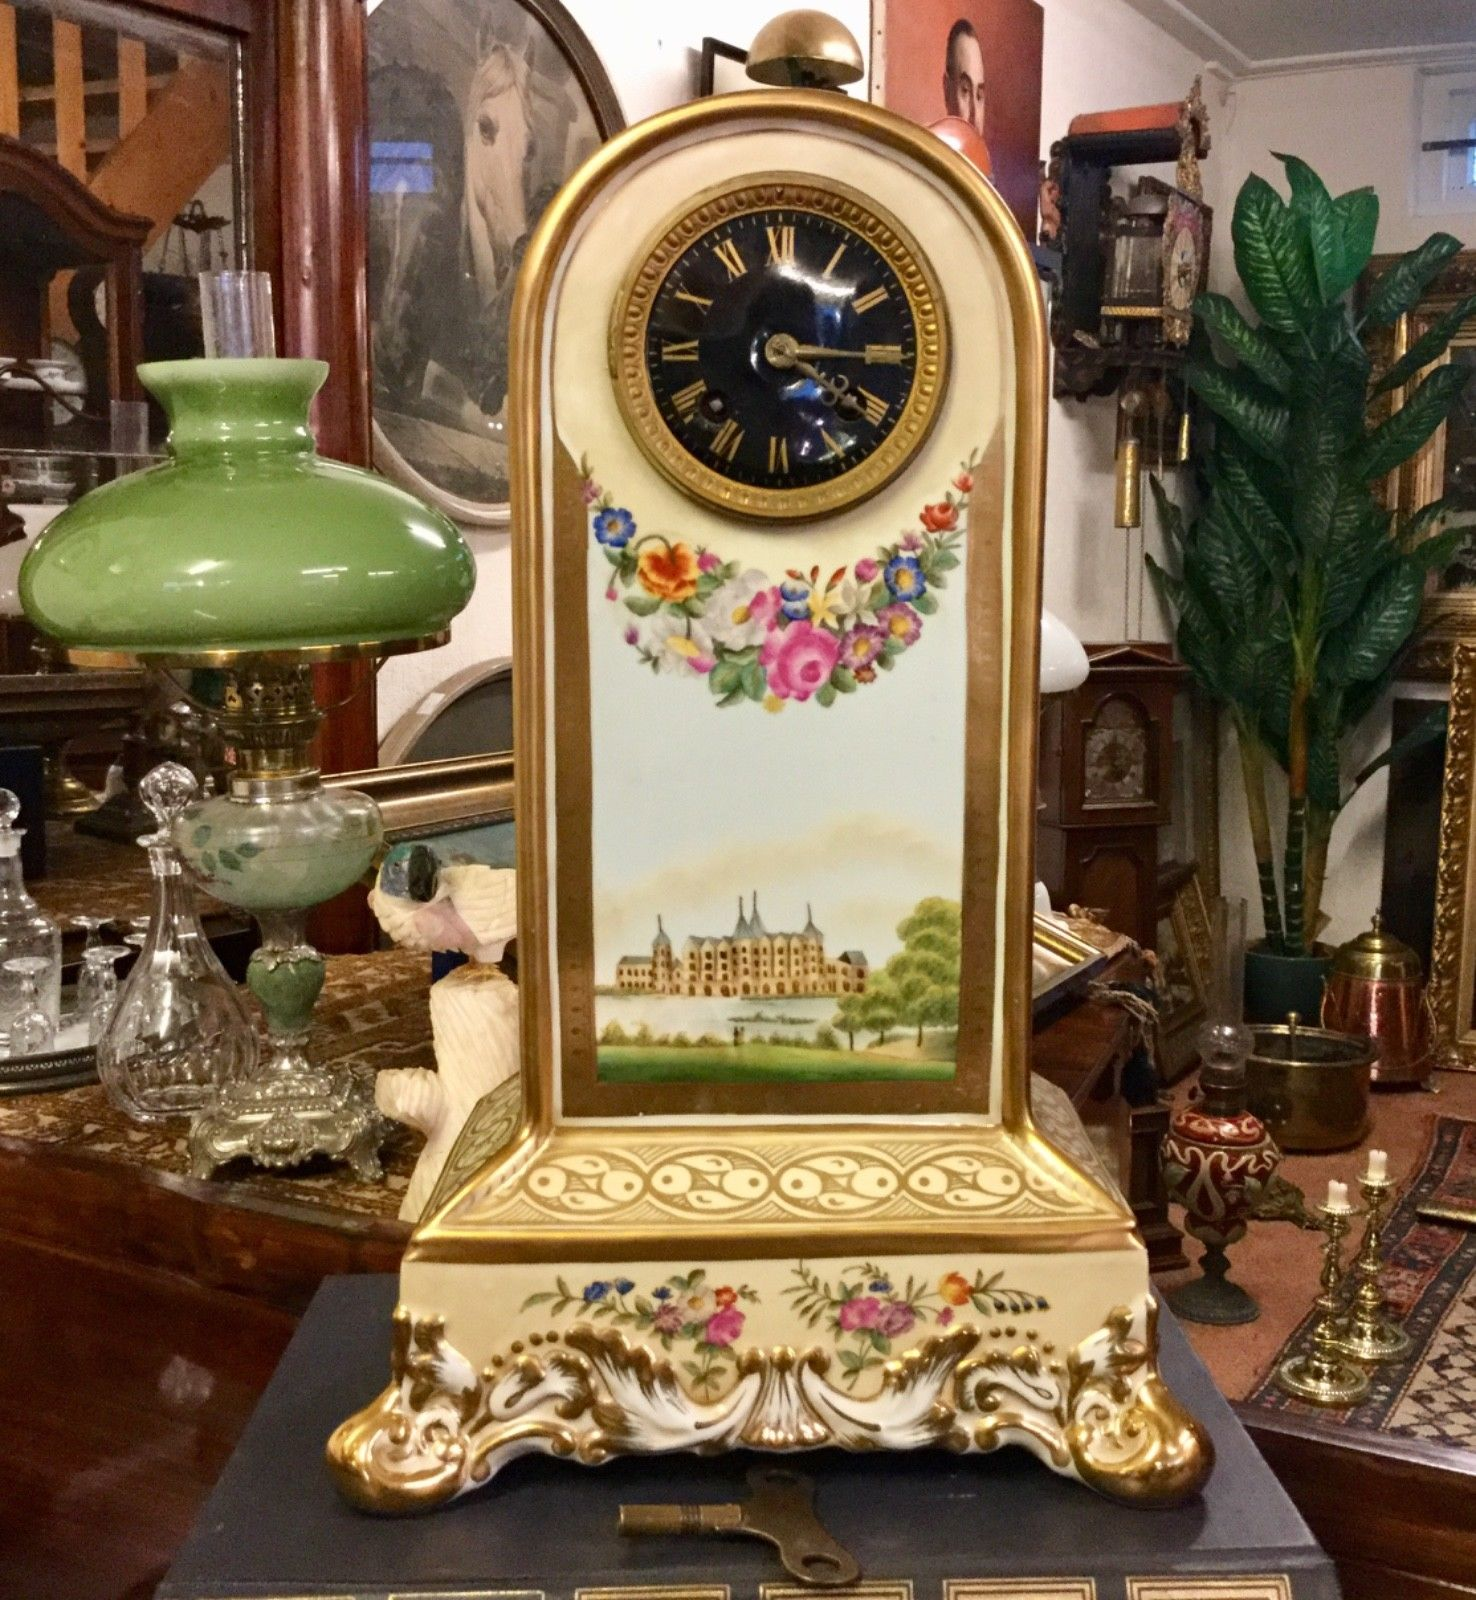 Antique porcelain mantle clock dates back to the 1860's and originates from France